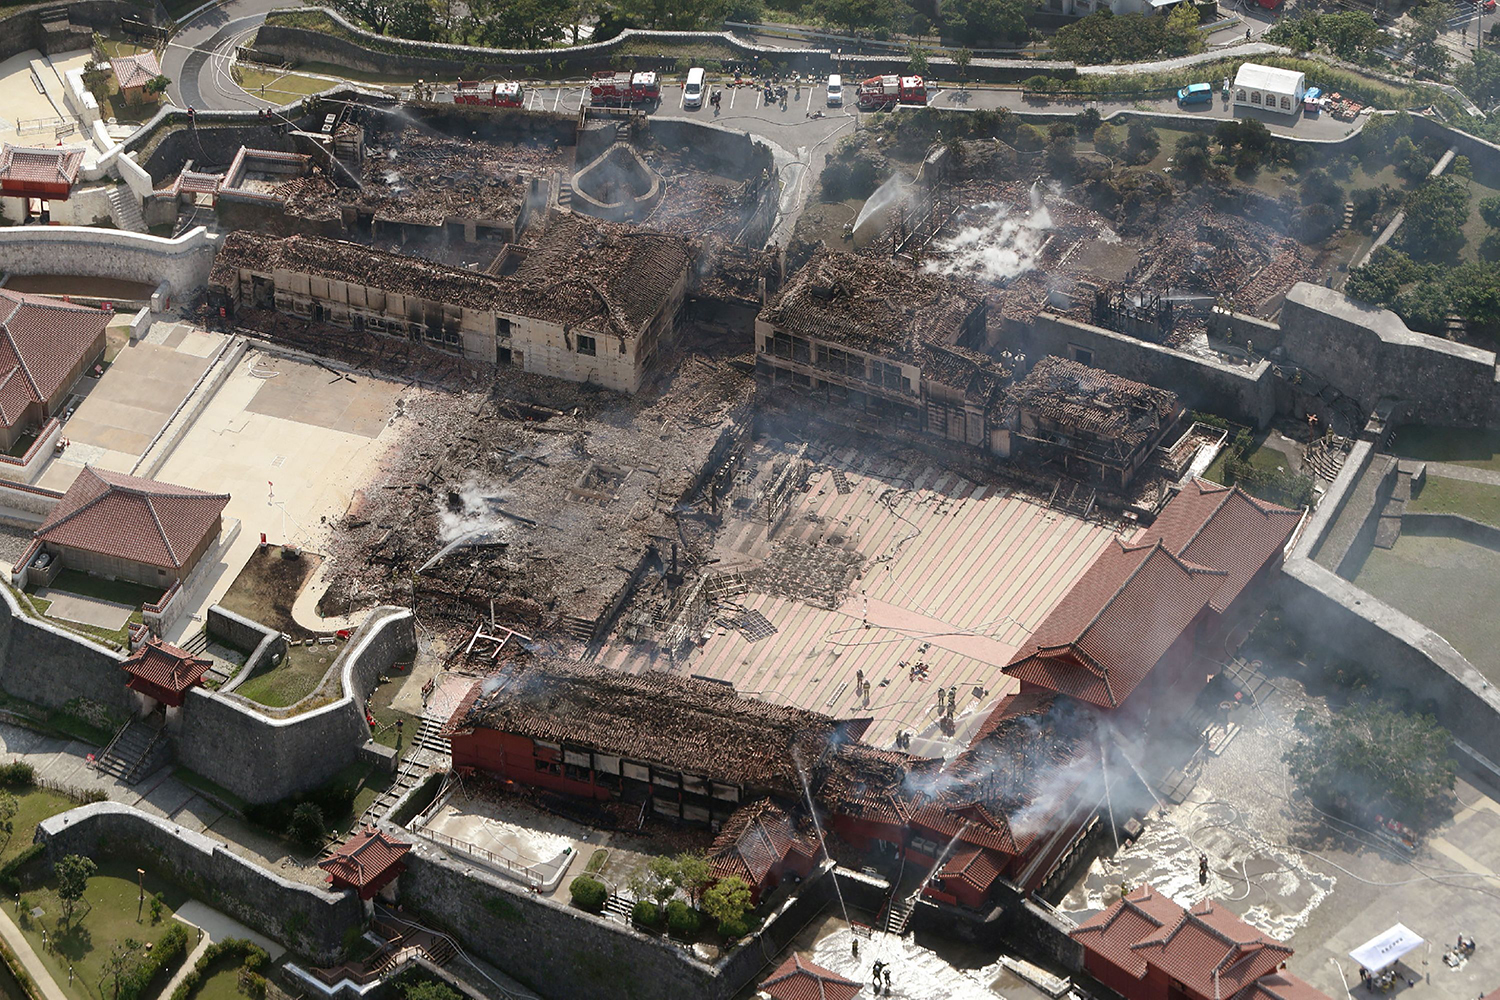 The remains of Shuri Castle are seen from above after a fire ripped through the historic site in Naha, Japan's southern Okinawa prefecture, on Oct. 31. STR/JIJI PRESS/AFP via Getty Images